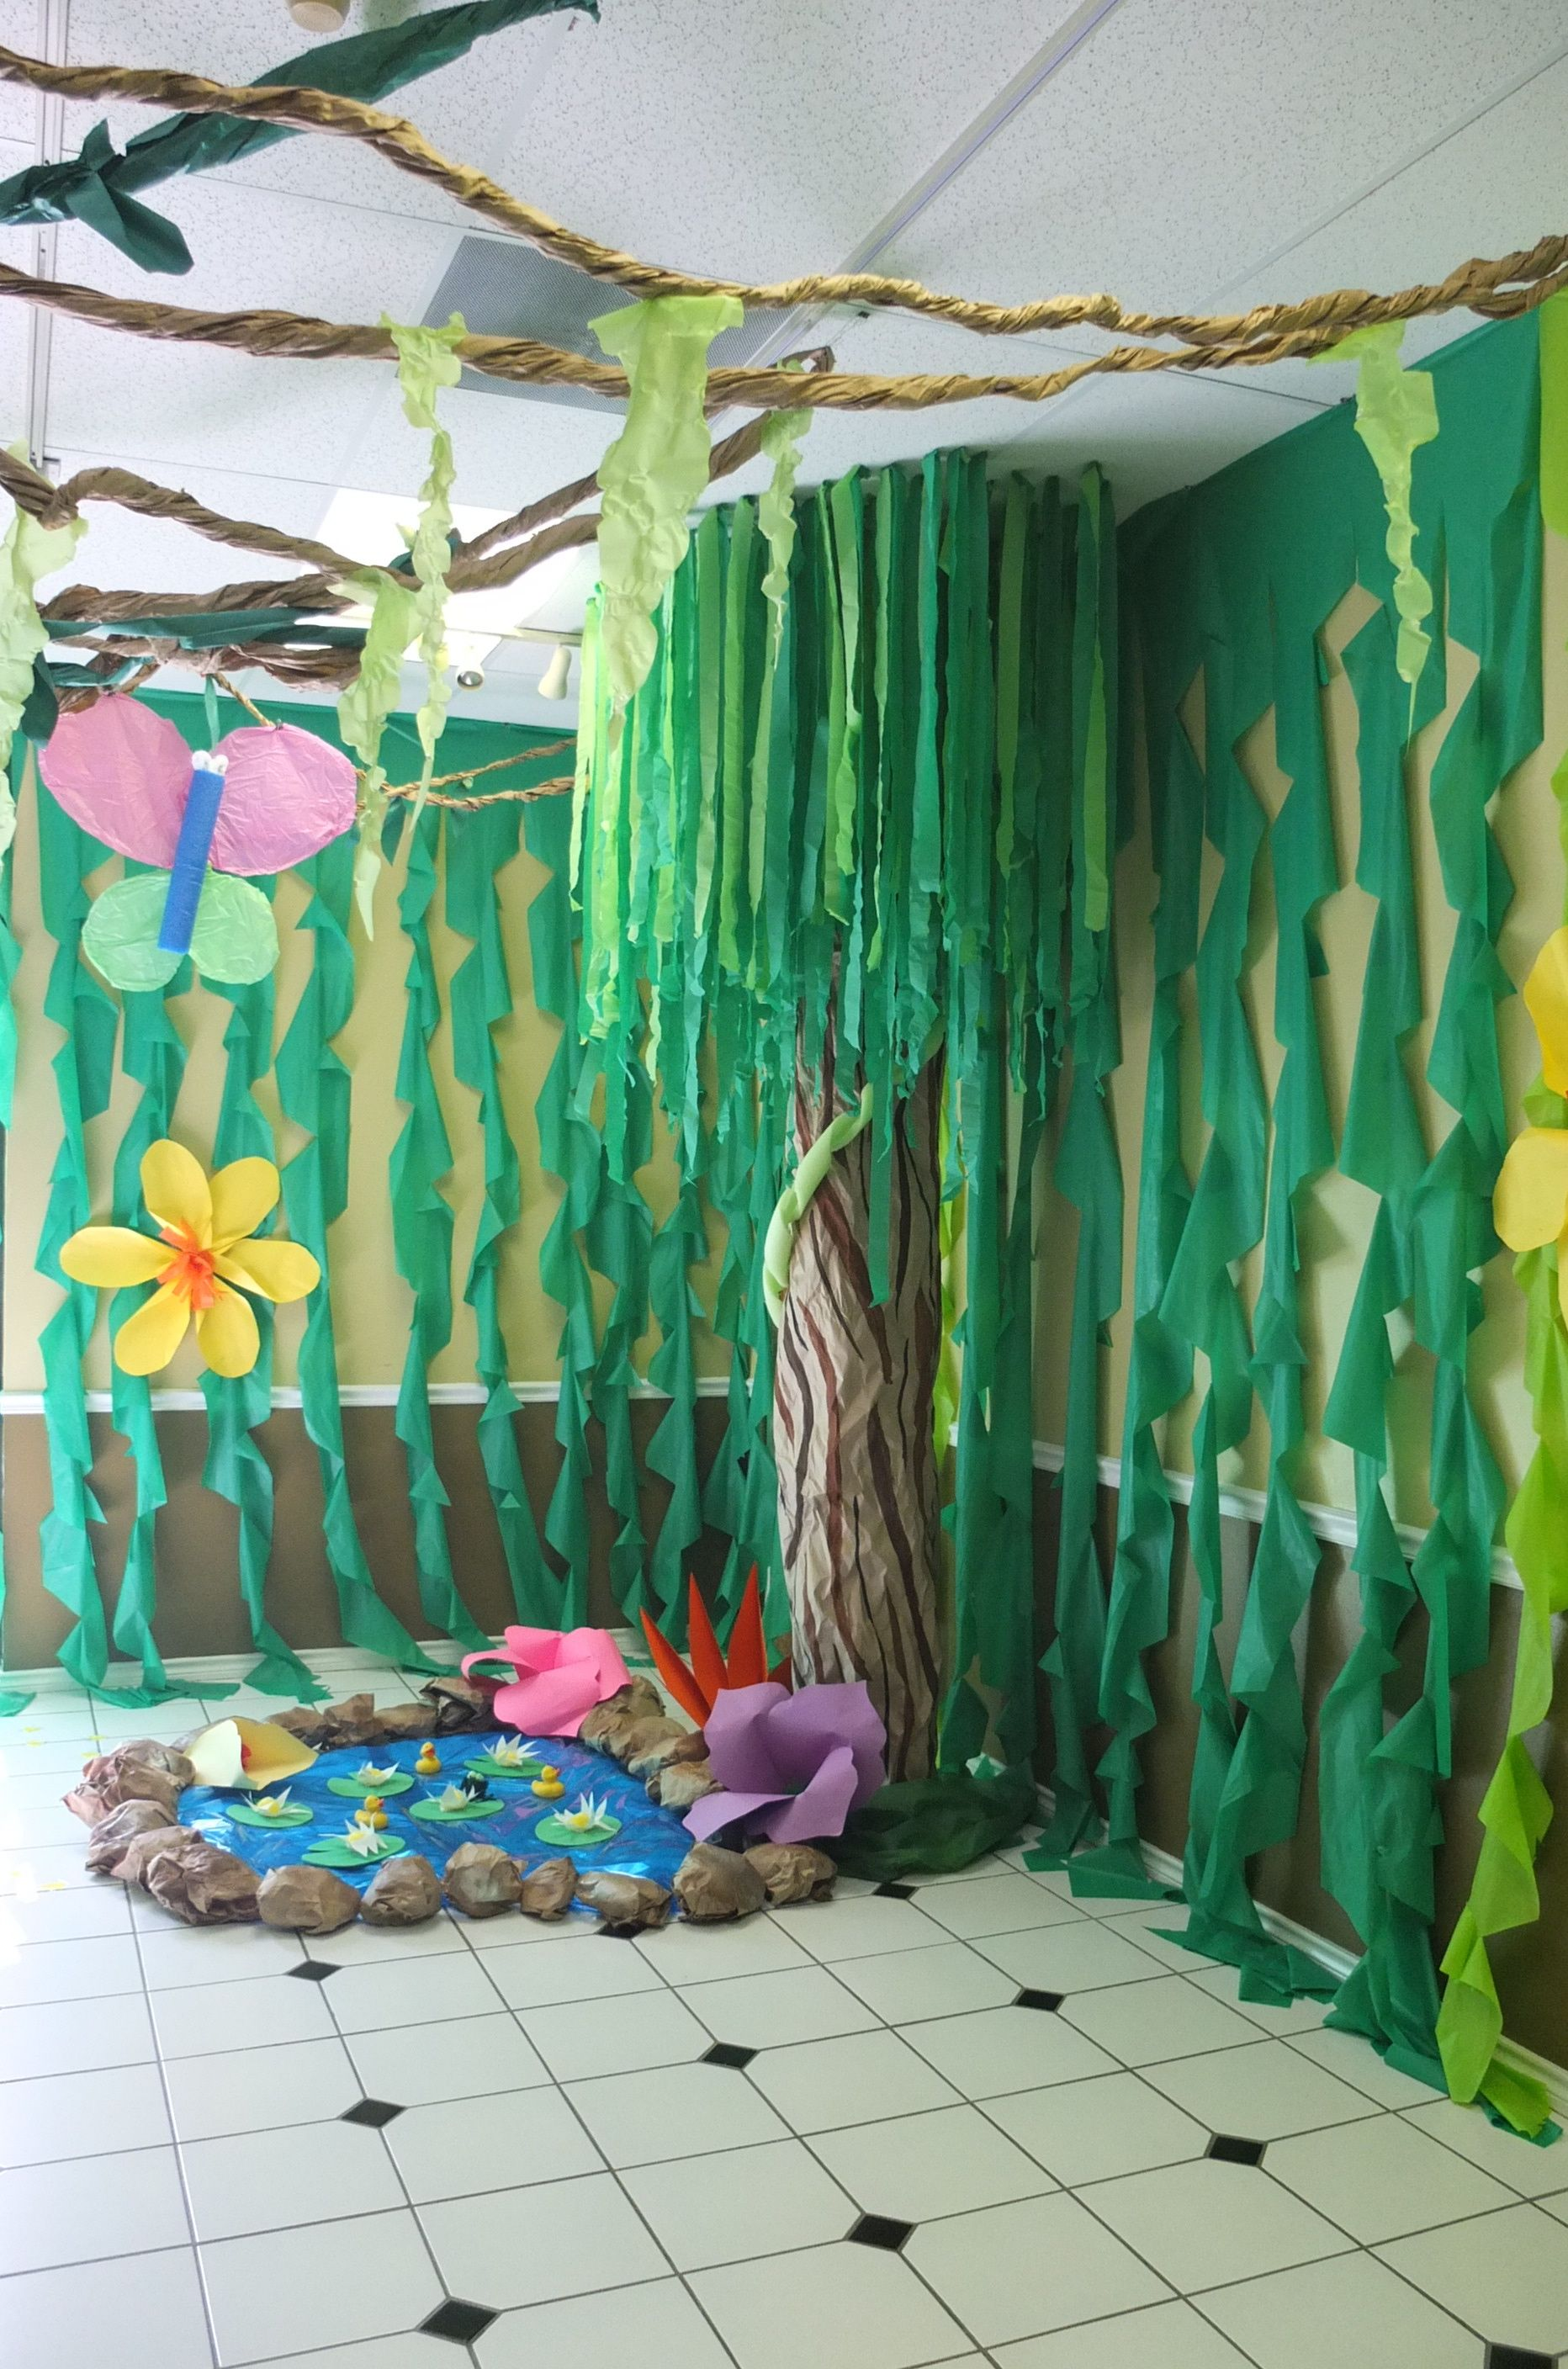 journey off the map decorations - Google Search | Vbs 2015 ...